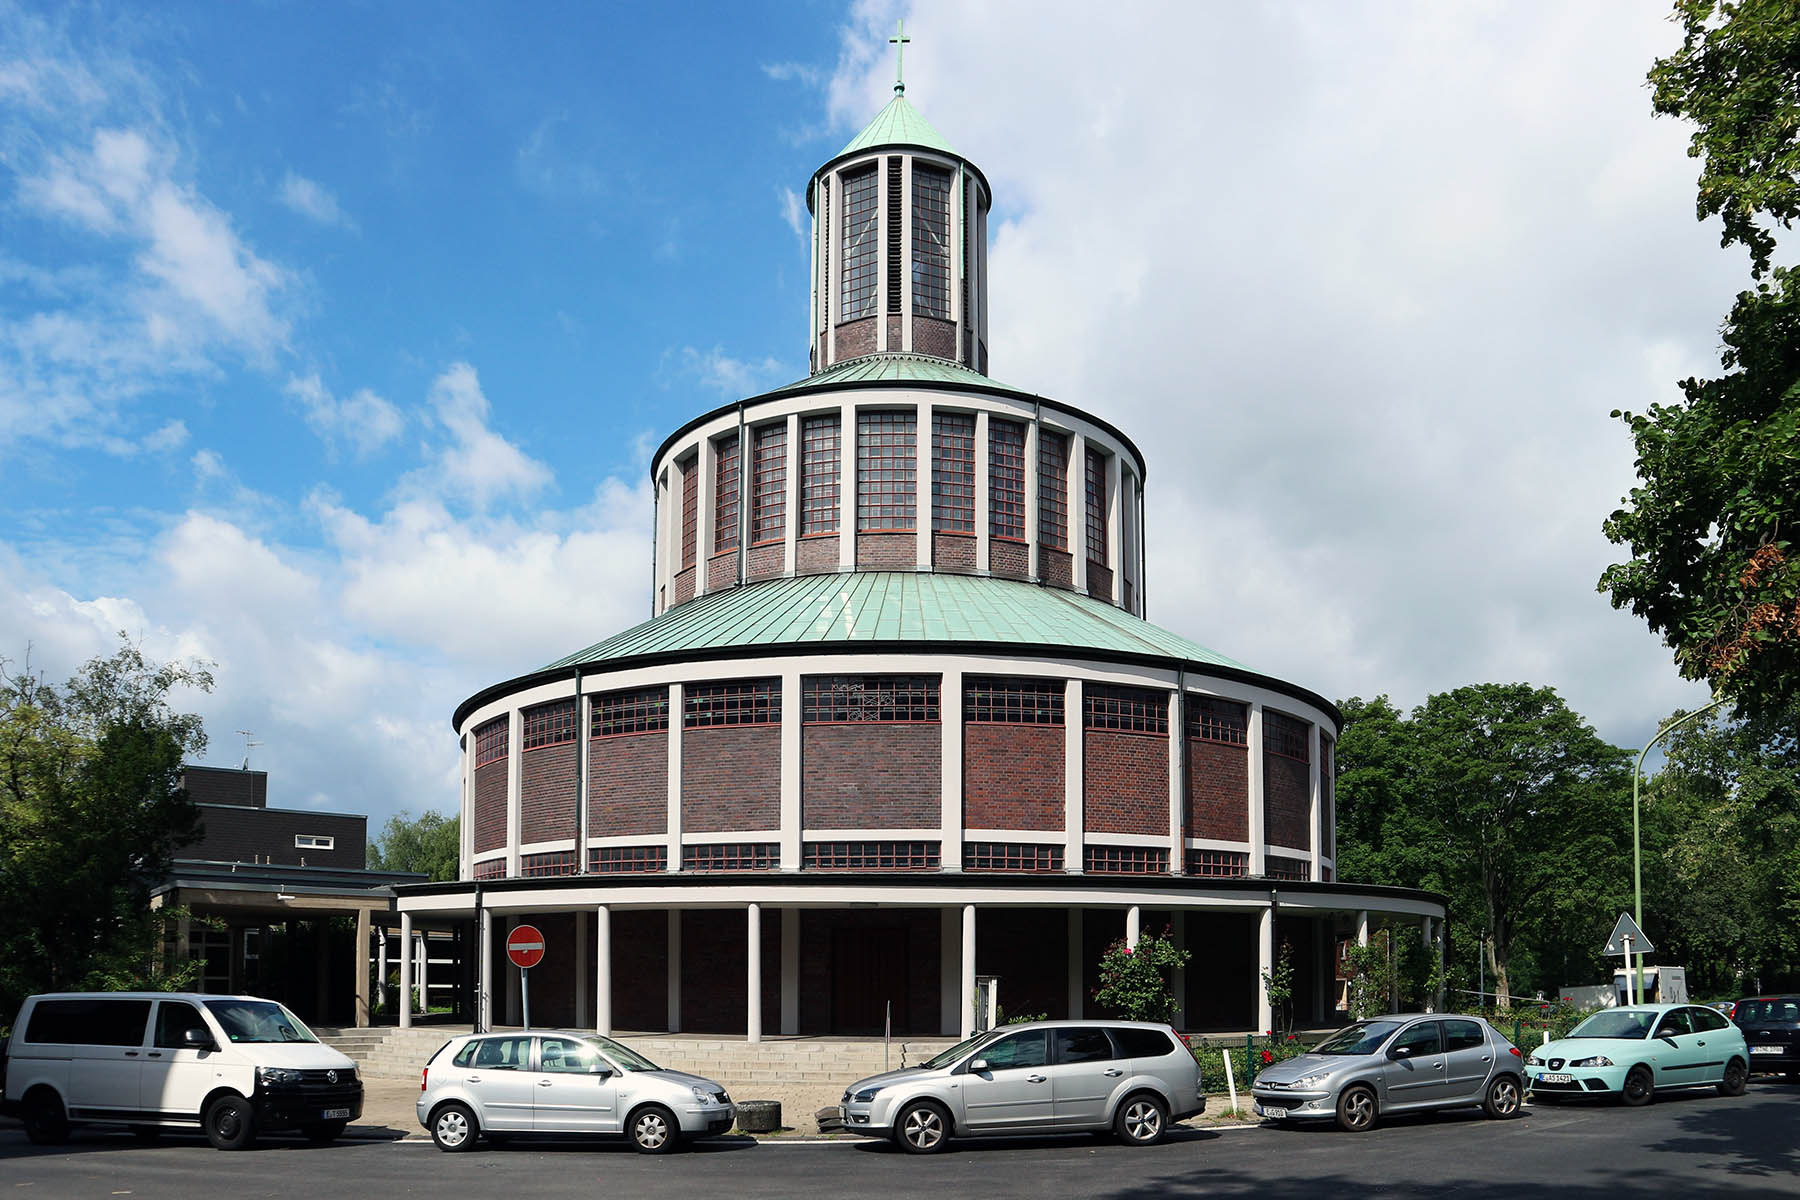 Evangelische Auferstehungskirche (Evangelical Church of the Resurrection).  By Otto Bartning. Completion: 1930. Steubenstraße 52, 45138 Essen